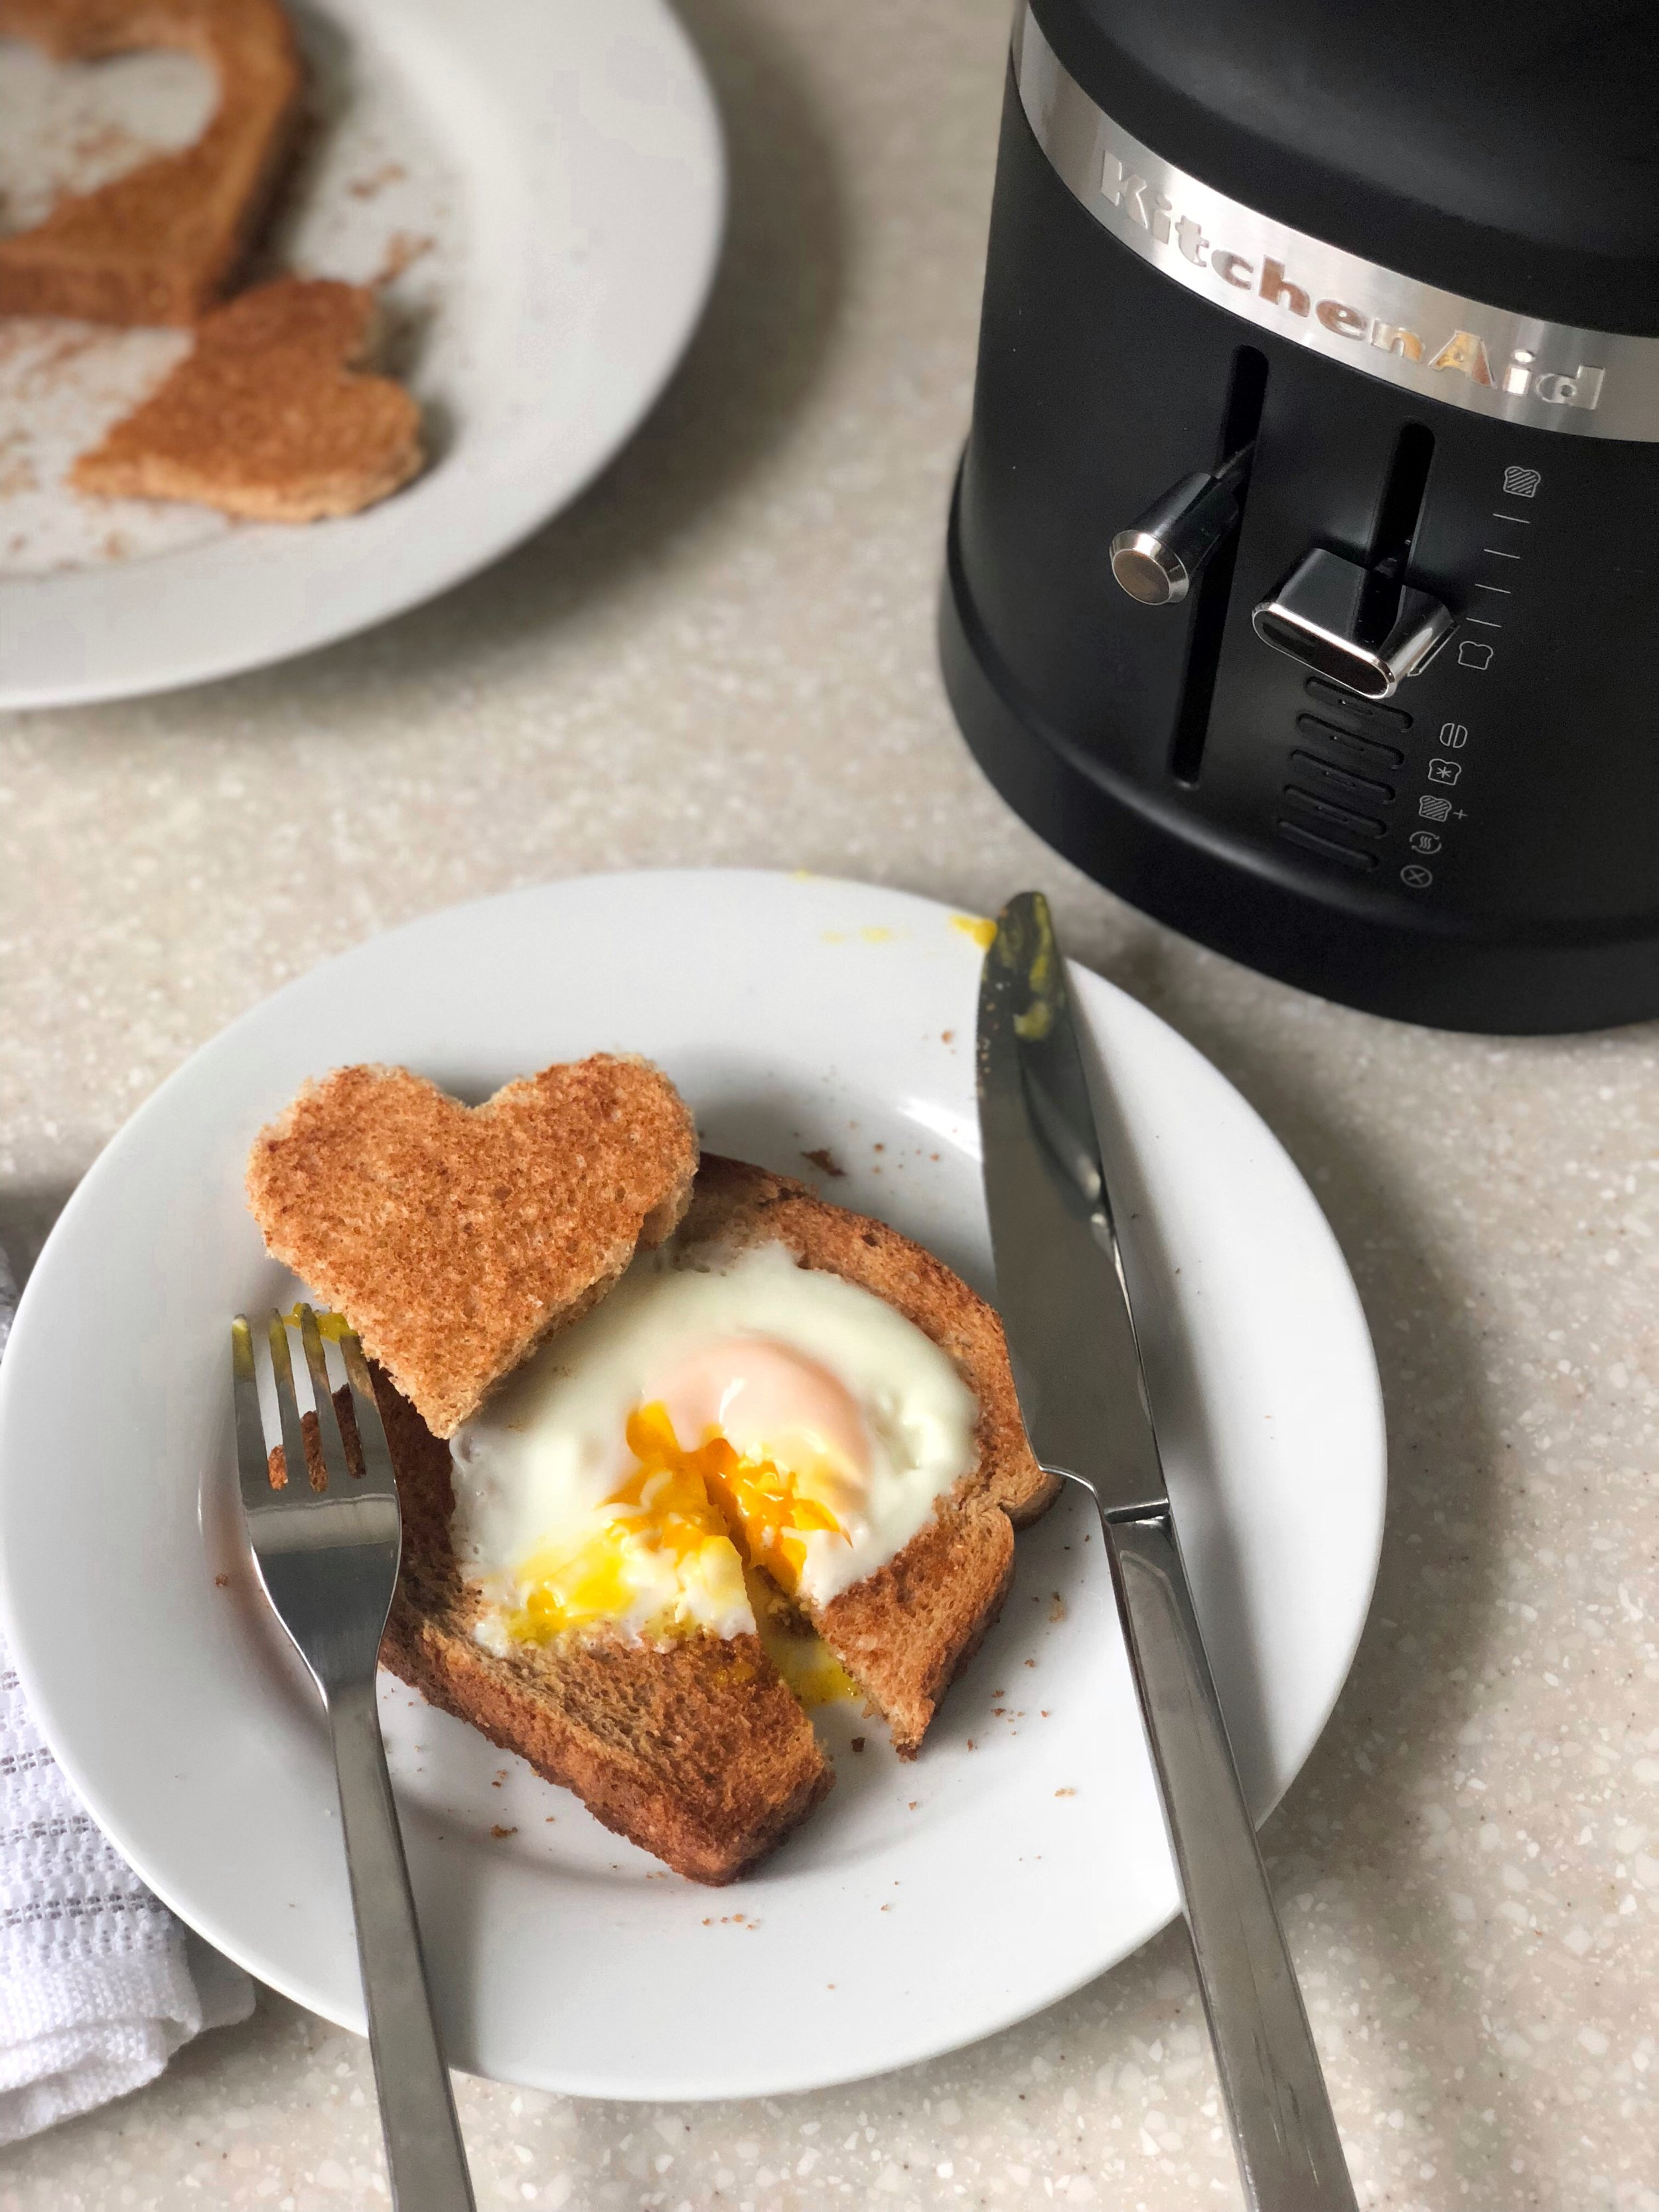 Wake up with Nebraska Furniture Mart, Egg in a Heart Recipe